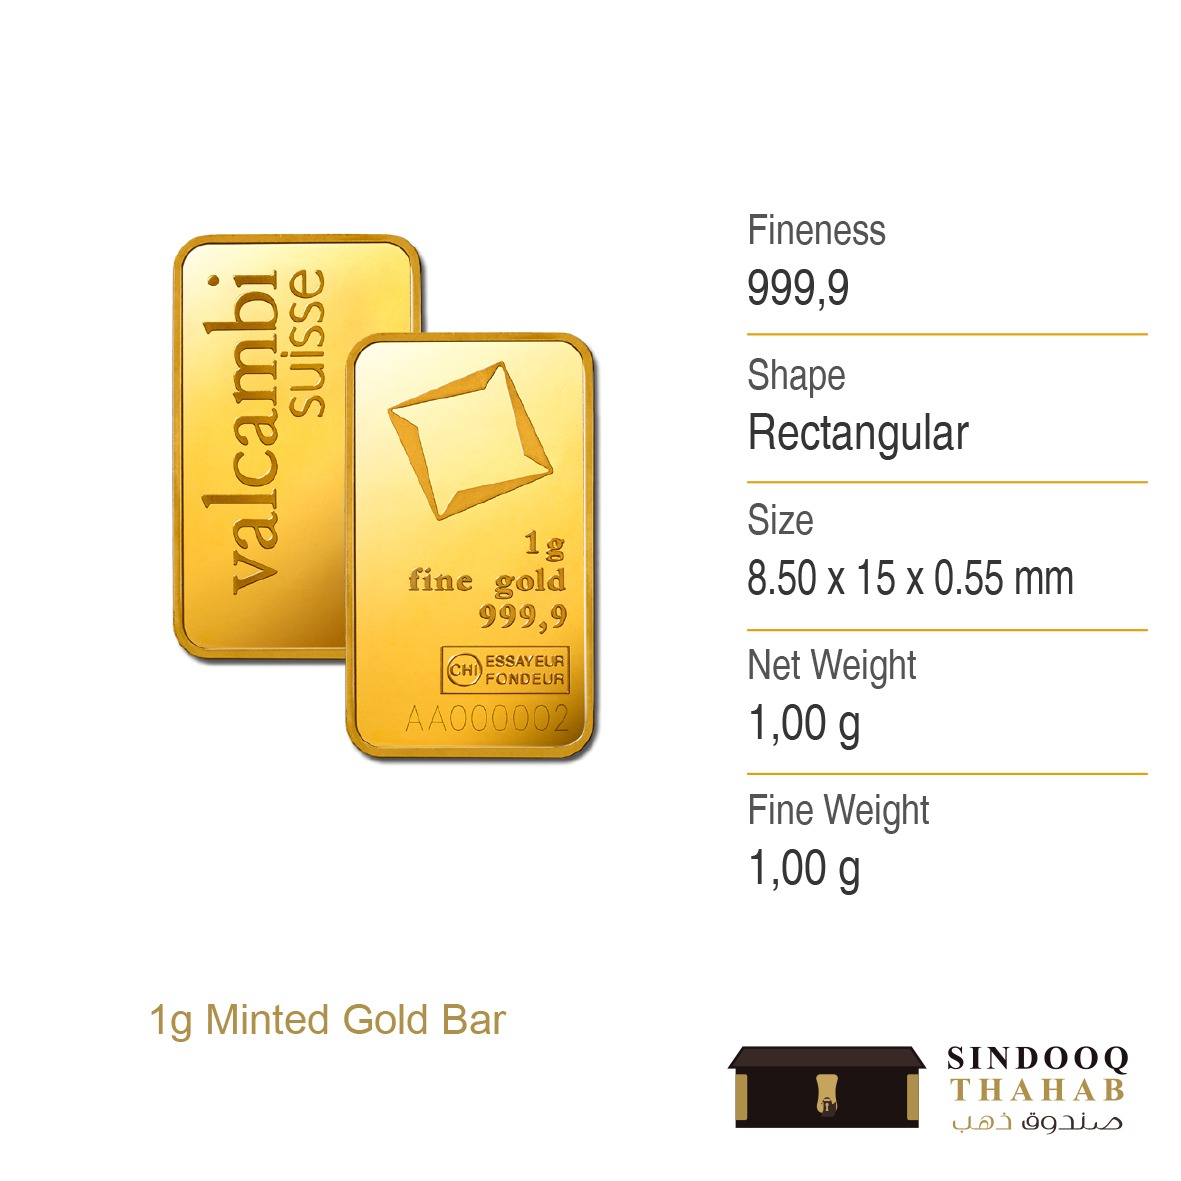 1g Minted Gold Bar